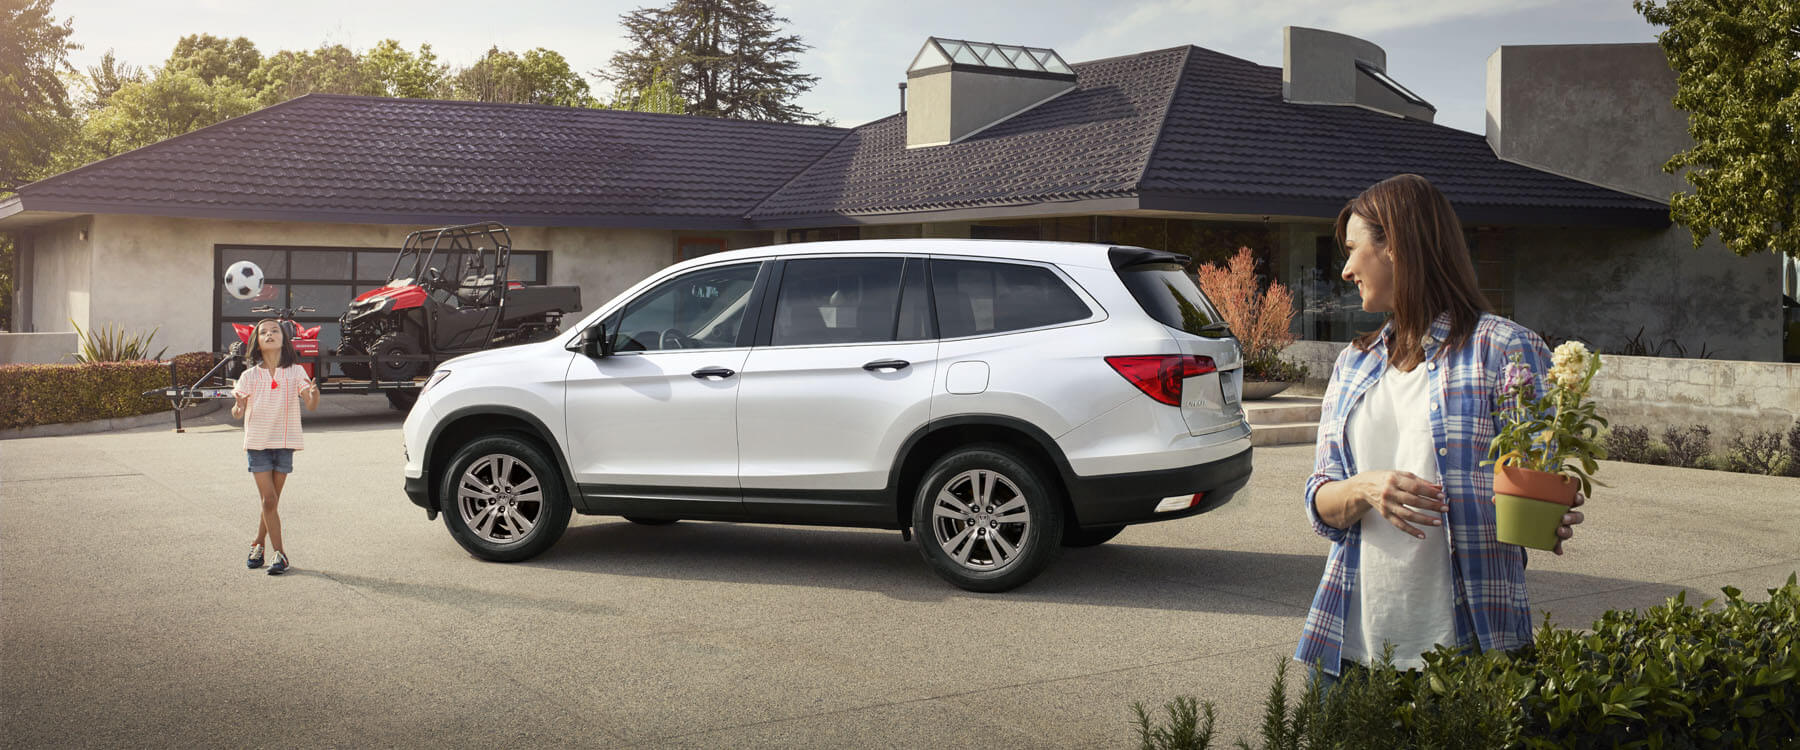 Russ Darrow Milwaukee >> Discover Some of the Best Family SUVs on the Road